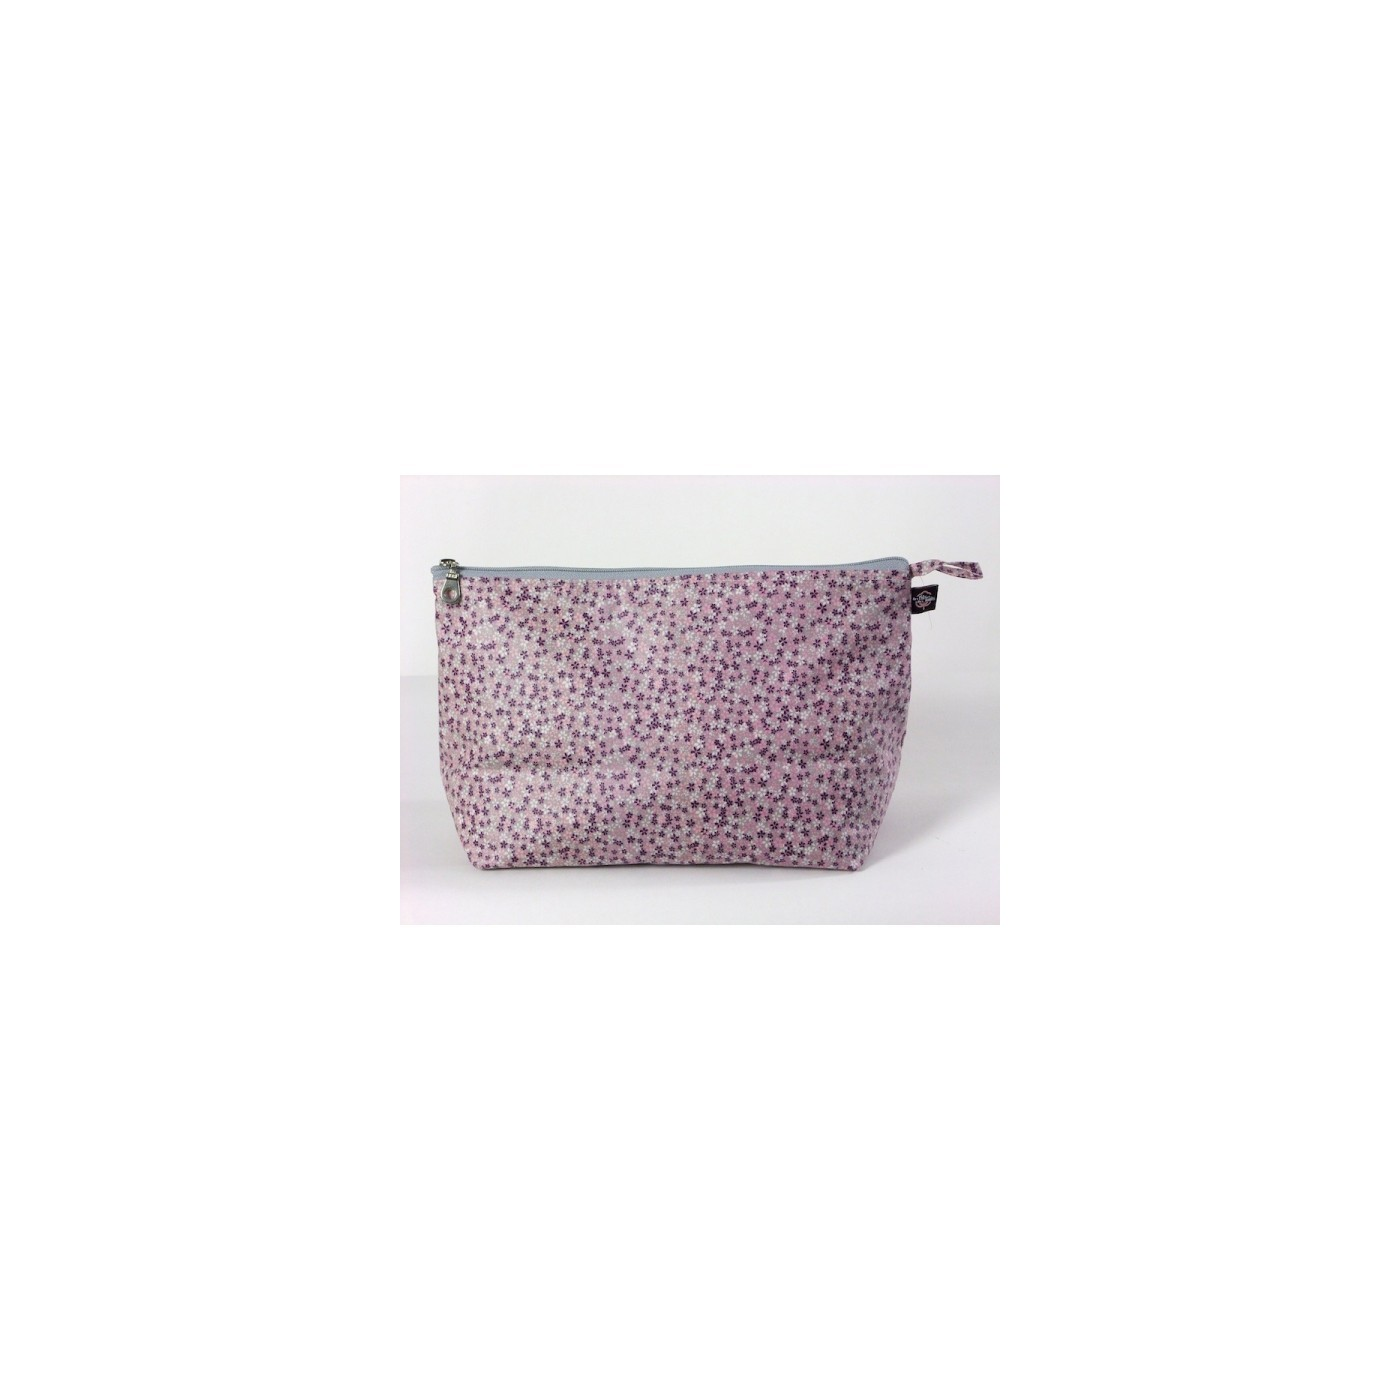 Toiletry coated cotton myosotis pink and grey yadayada for Red and grey bathroom accessories